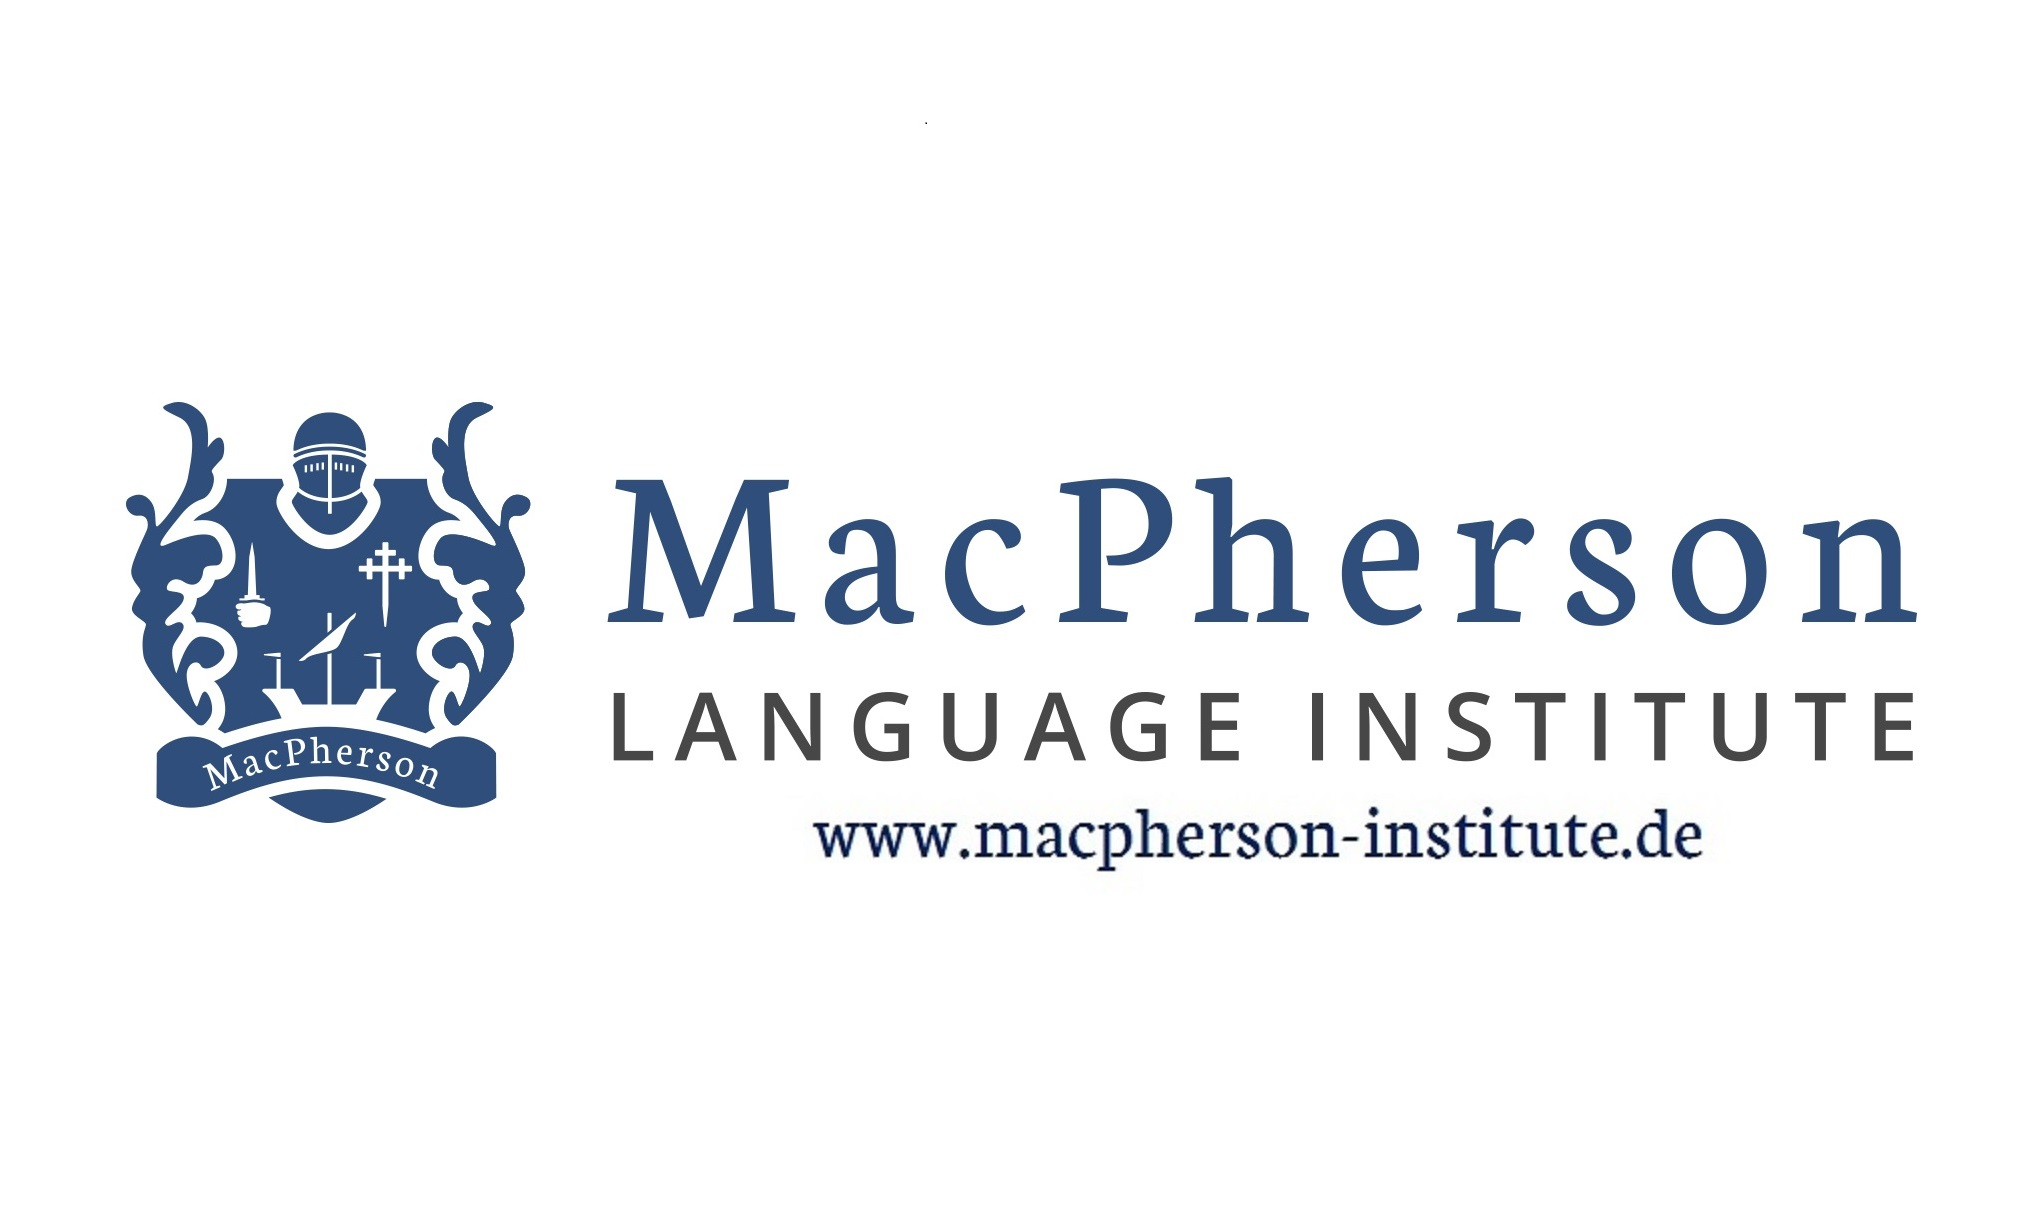 https://s3.eu-west-1.amazonaws.com/teachers.gymglish.com/listings/501/5bb77b8cc27e9_macpherson-language-institute-logo-with-email.jpg